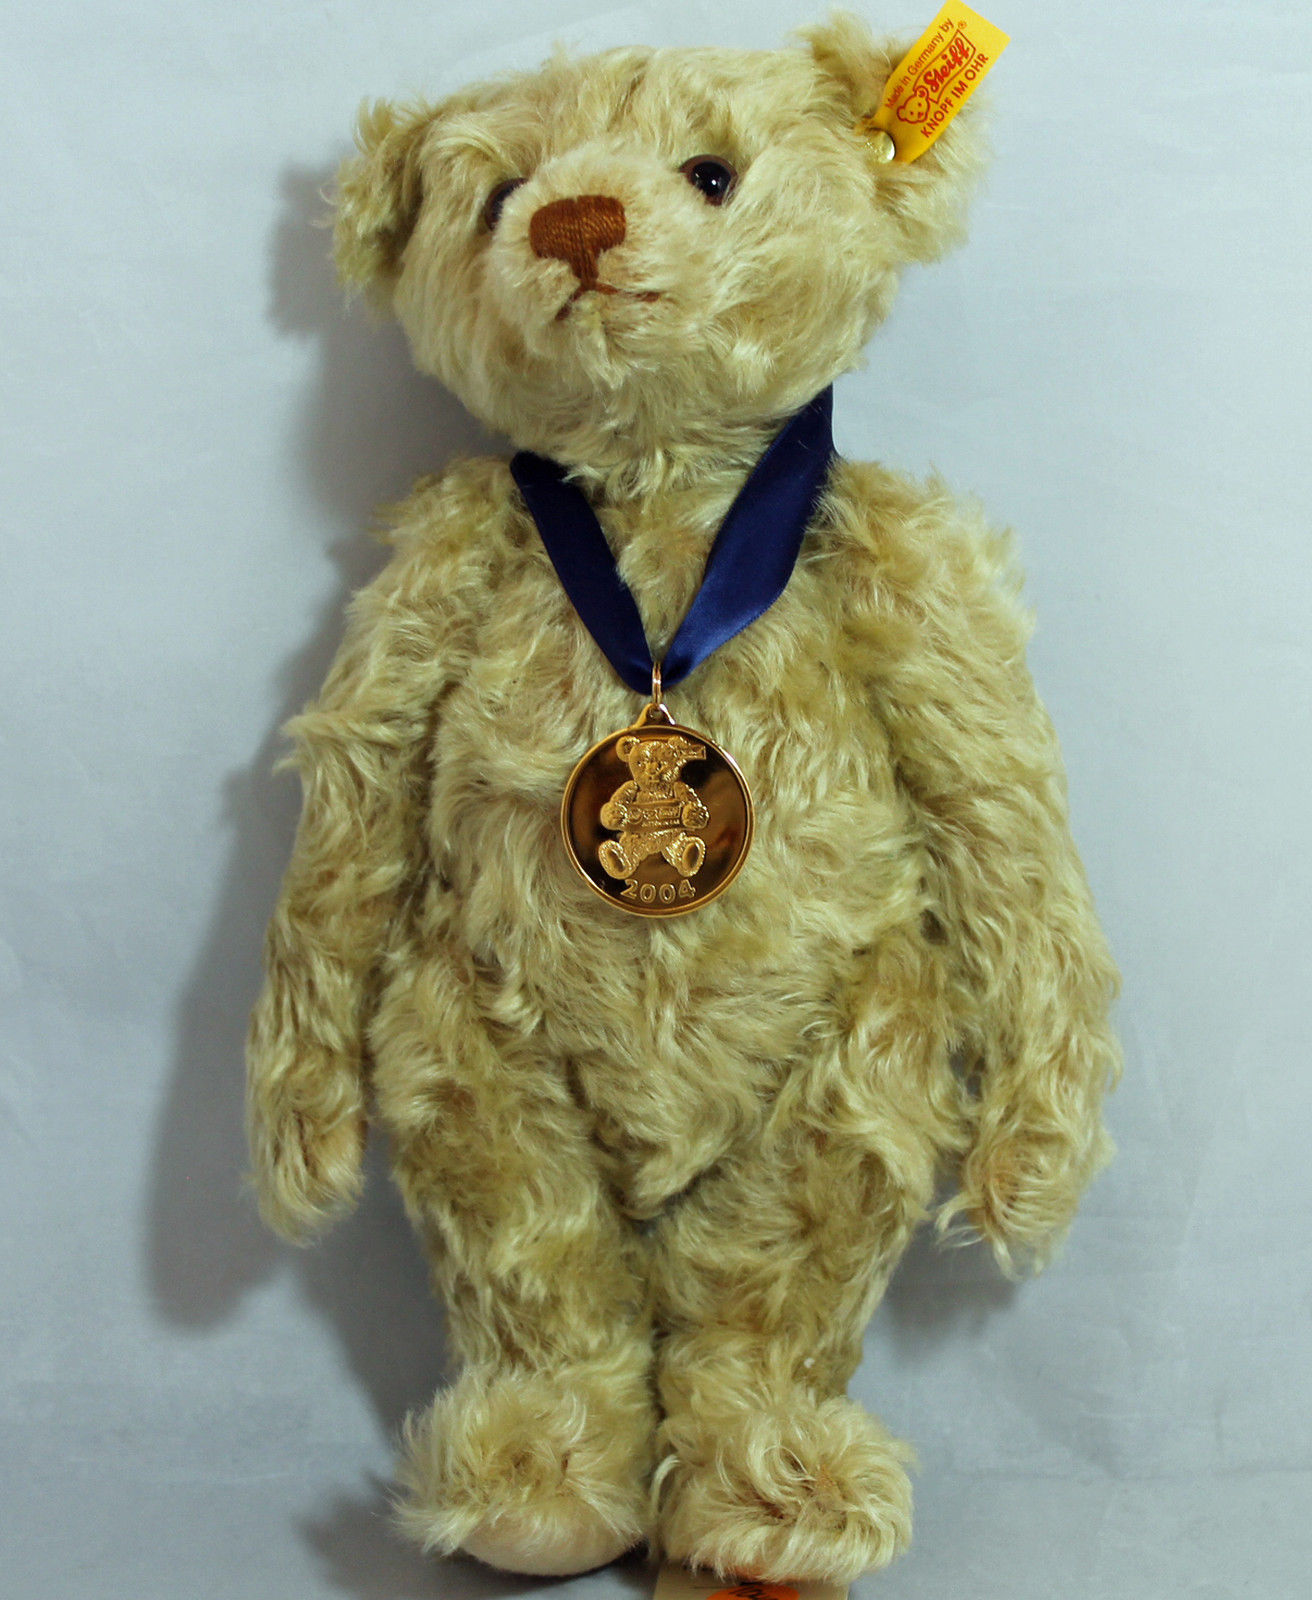 Steiff 2004 Danbury Mint Exclusive Classic Jointed Teddy Bear, Light marróne-6673